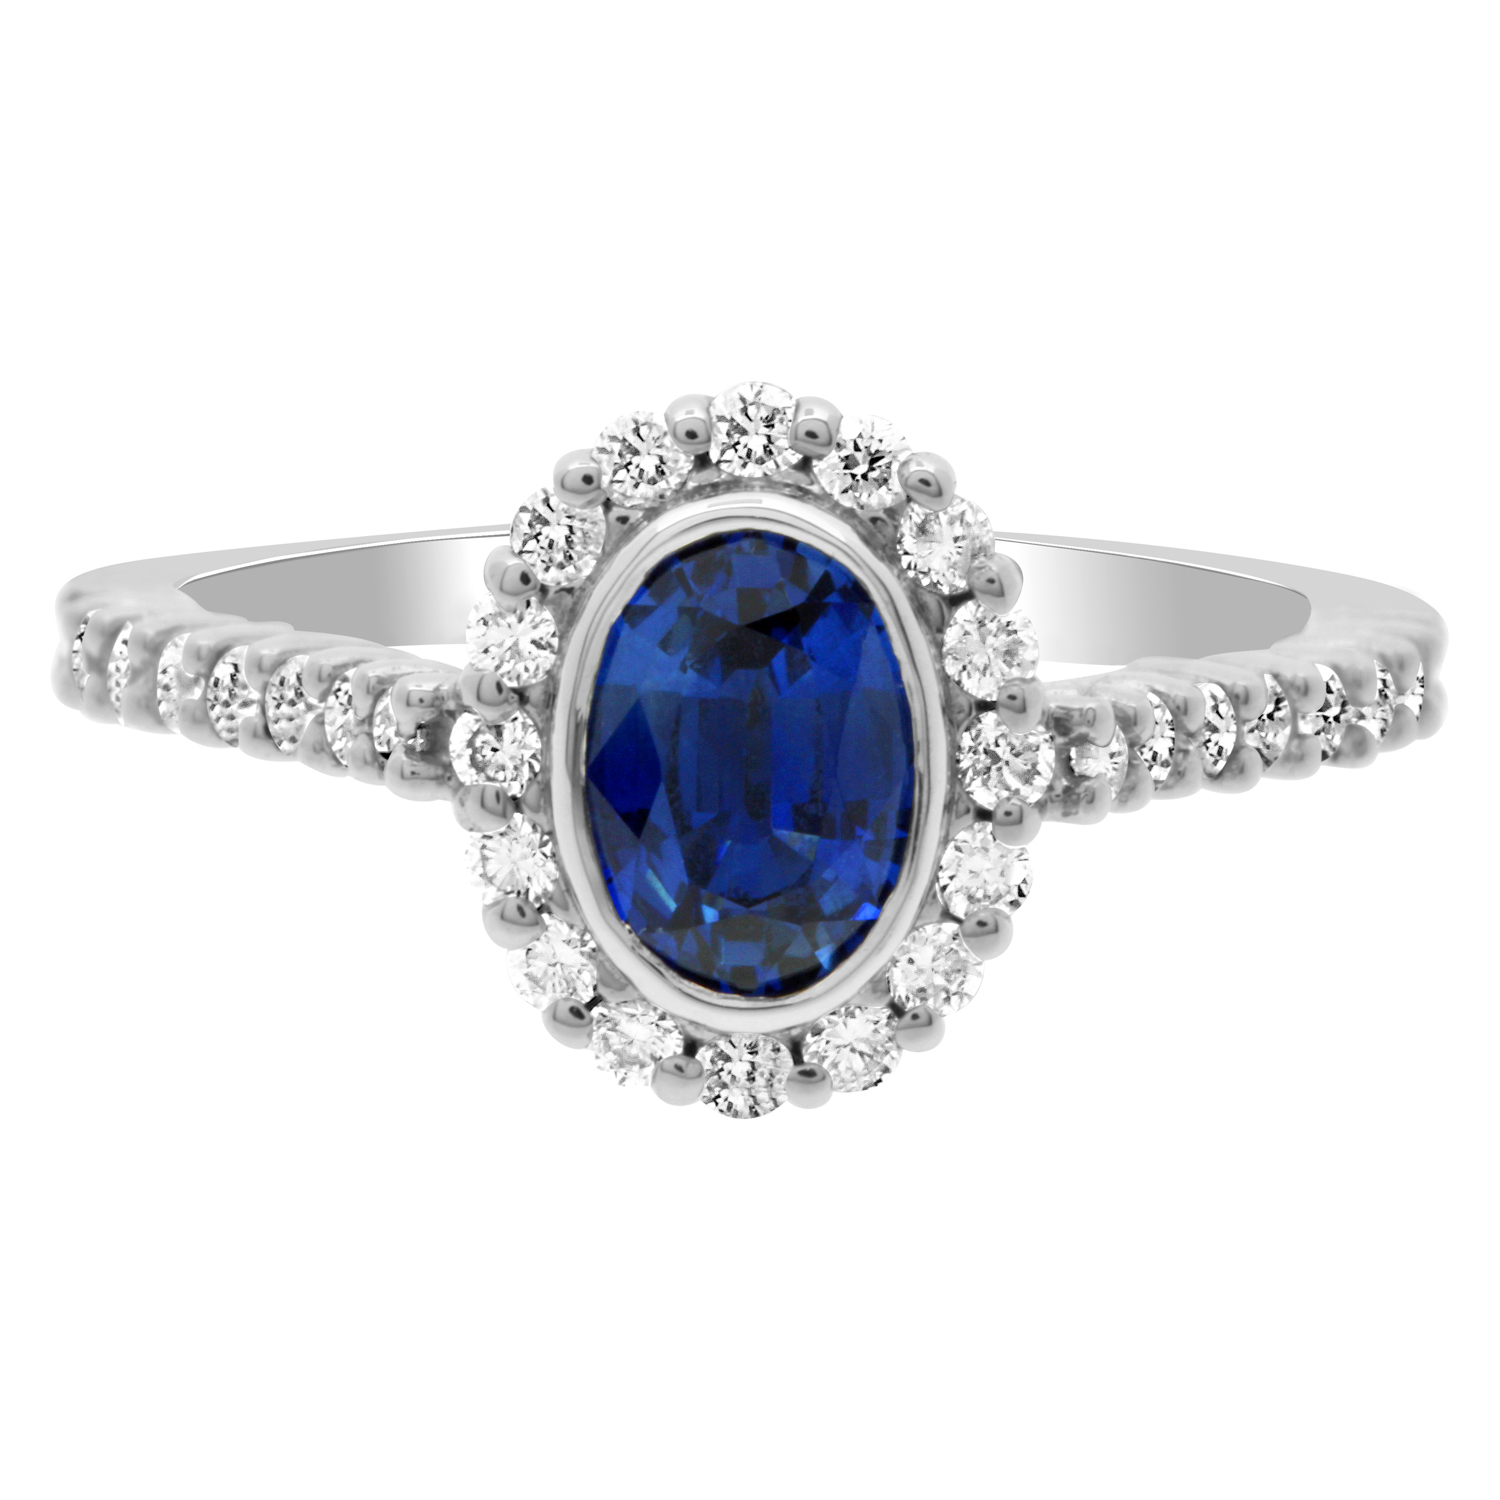 color blue pk jewelry cut silver birthstone cross ring cz sterling sapphire zag fashion zig trillion bling